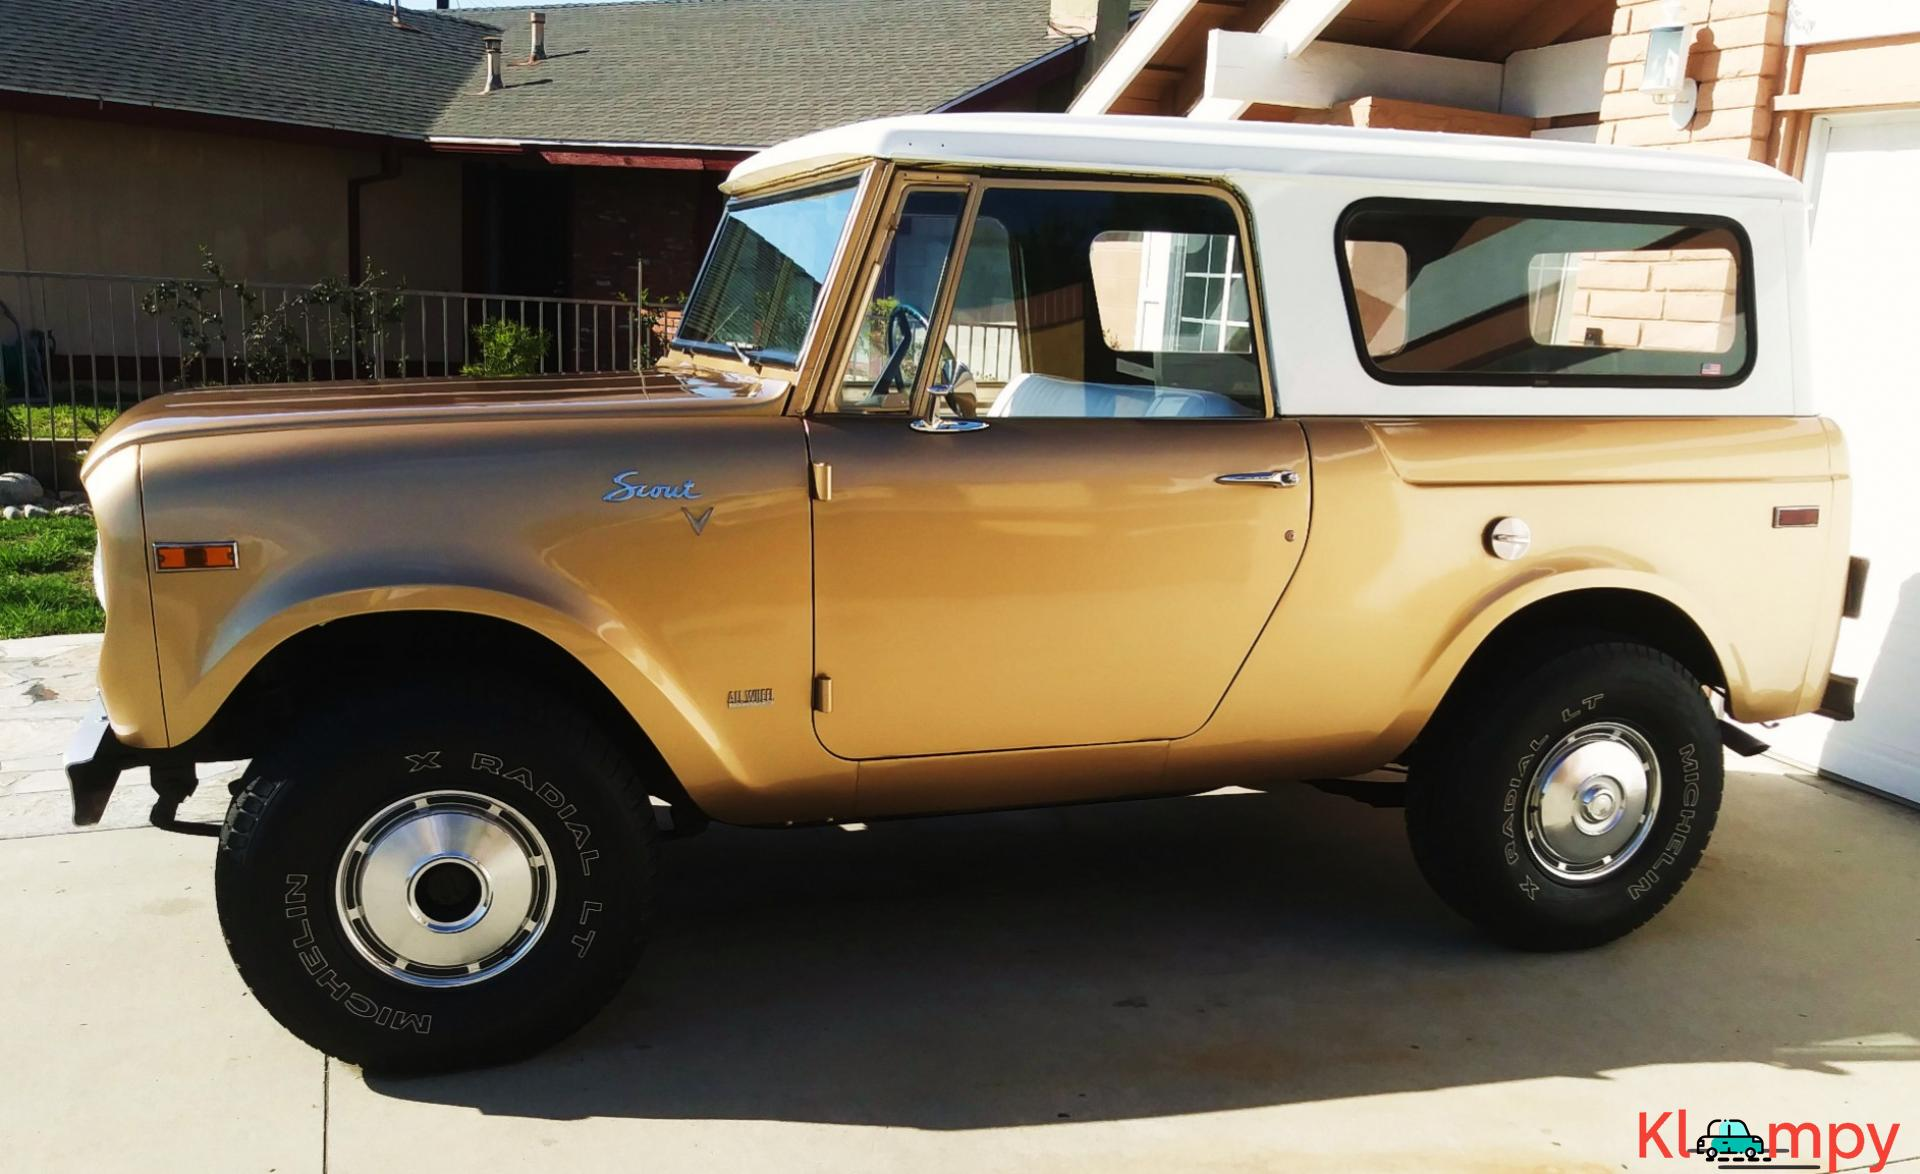 1971 International Harvester Scout 800B Apache Gold Poly 4x4 - 9/14